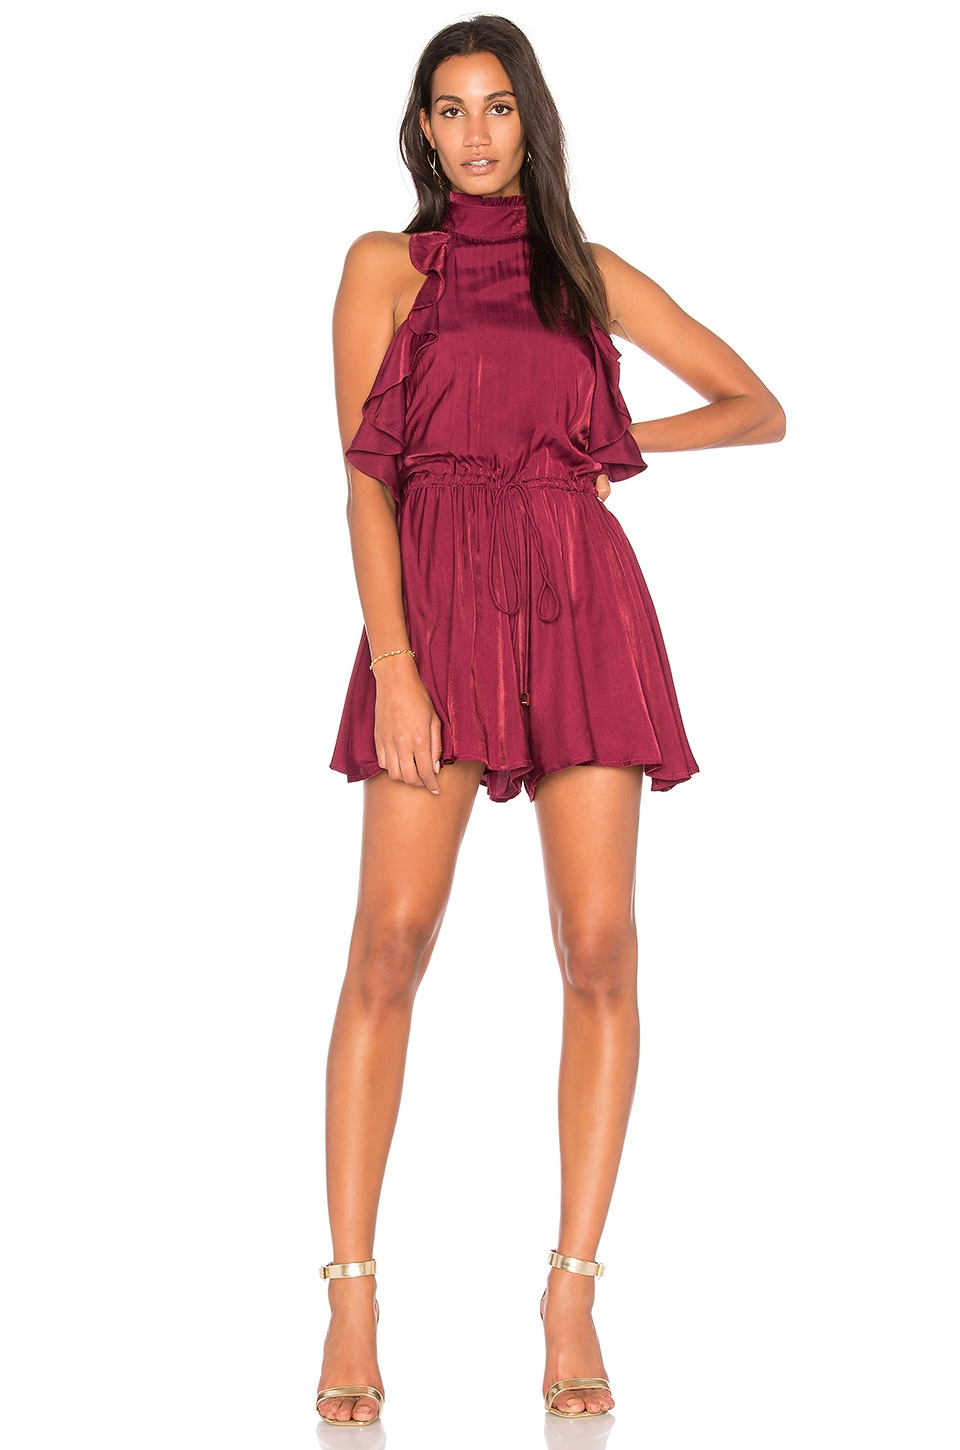 Negroni Playsuit